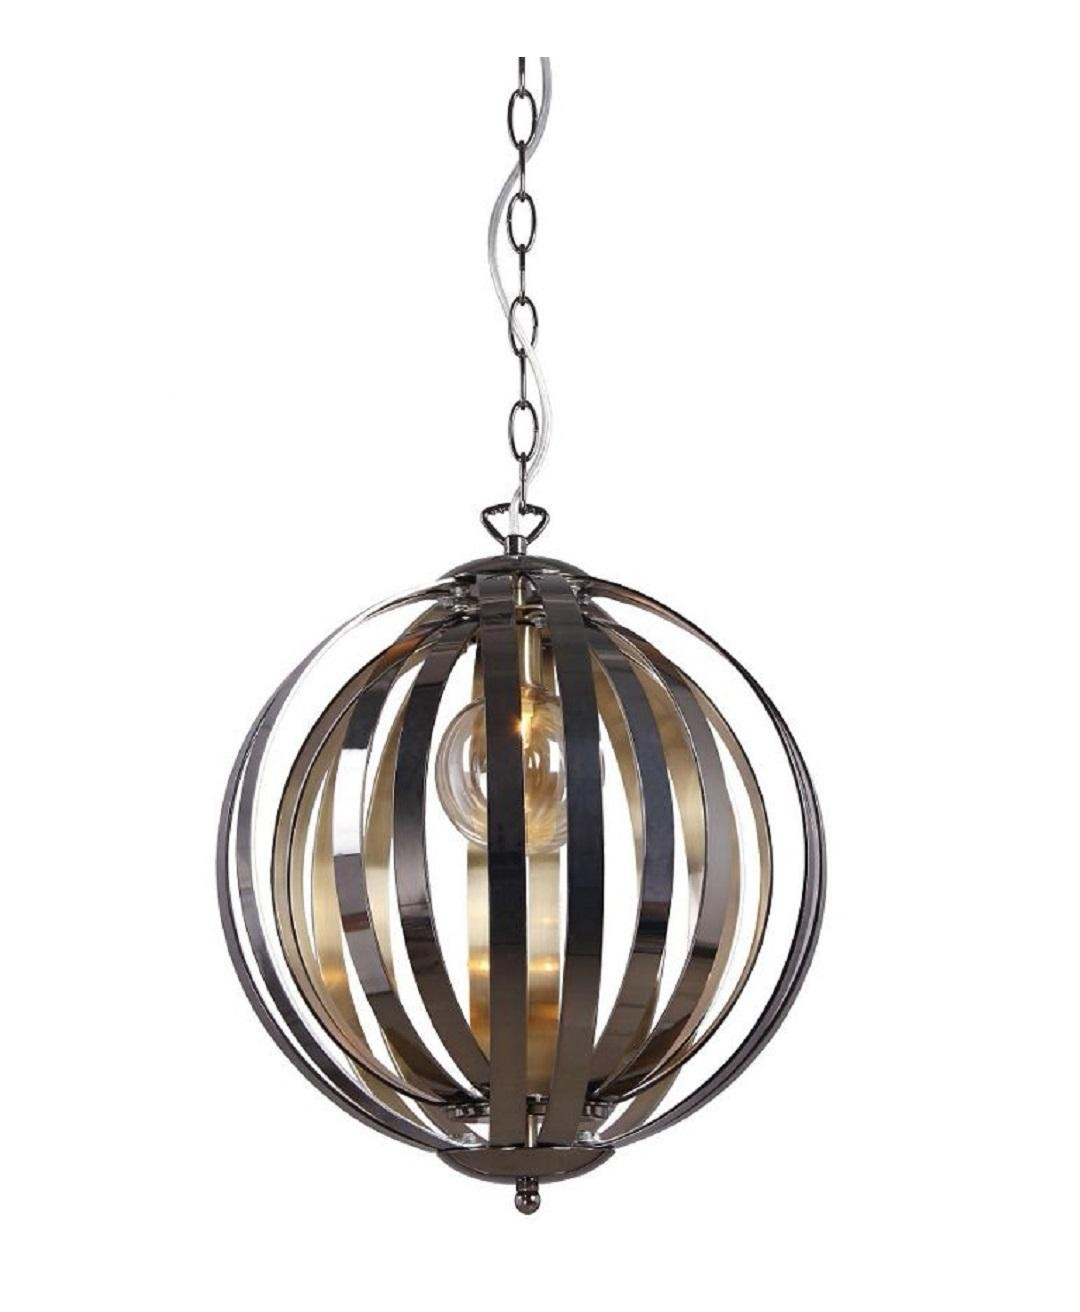 Debenhams 3030018158 Home Collection 'Charlie' Pendant